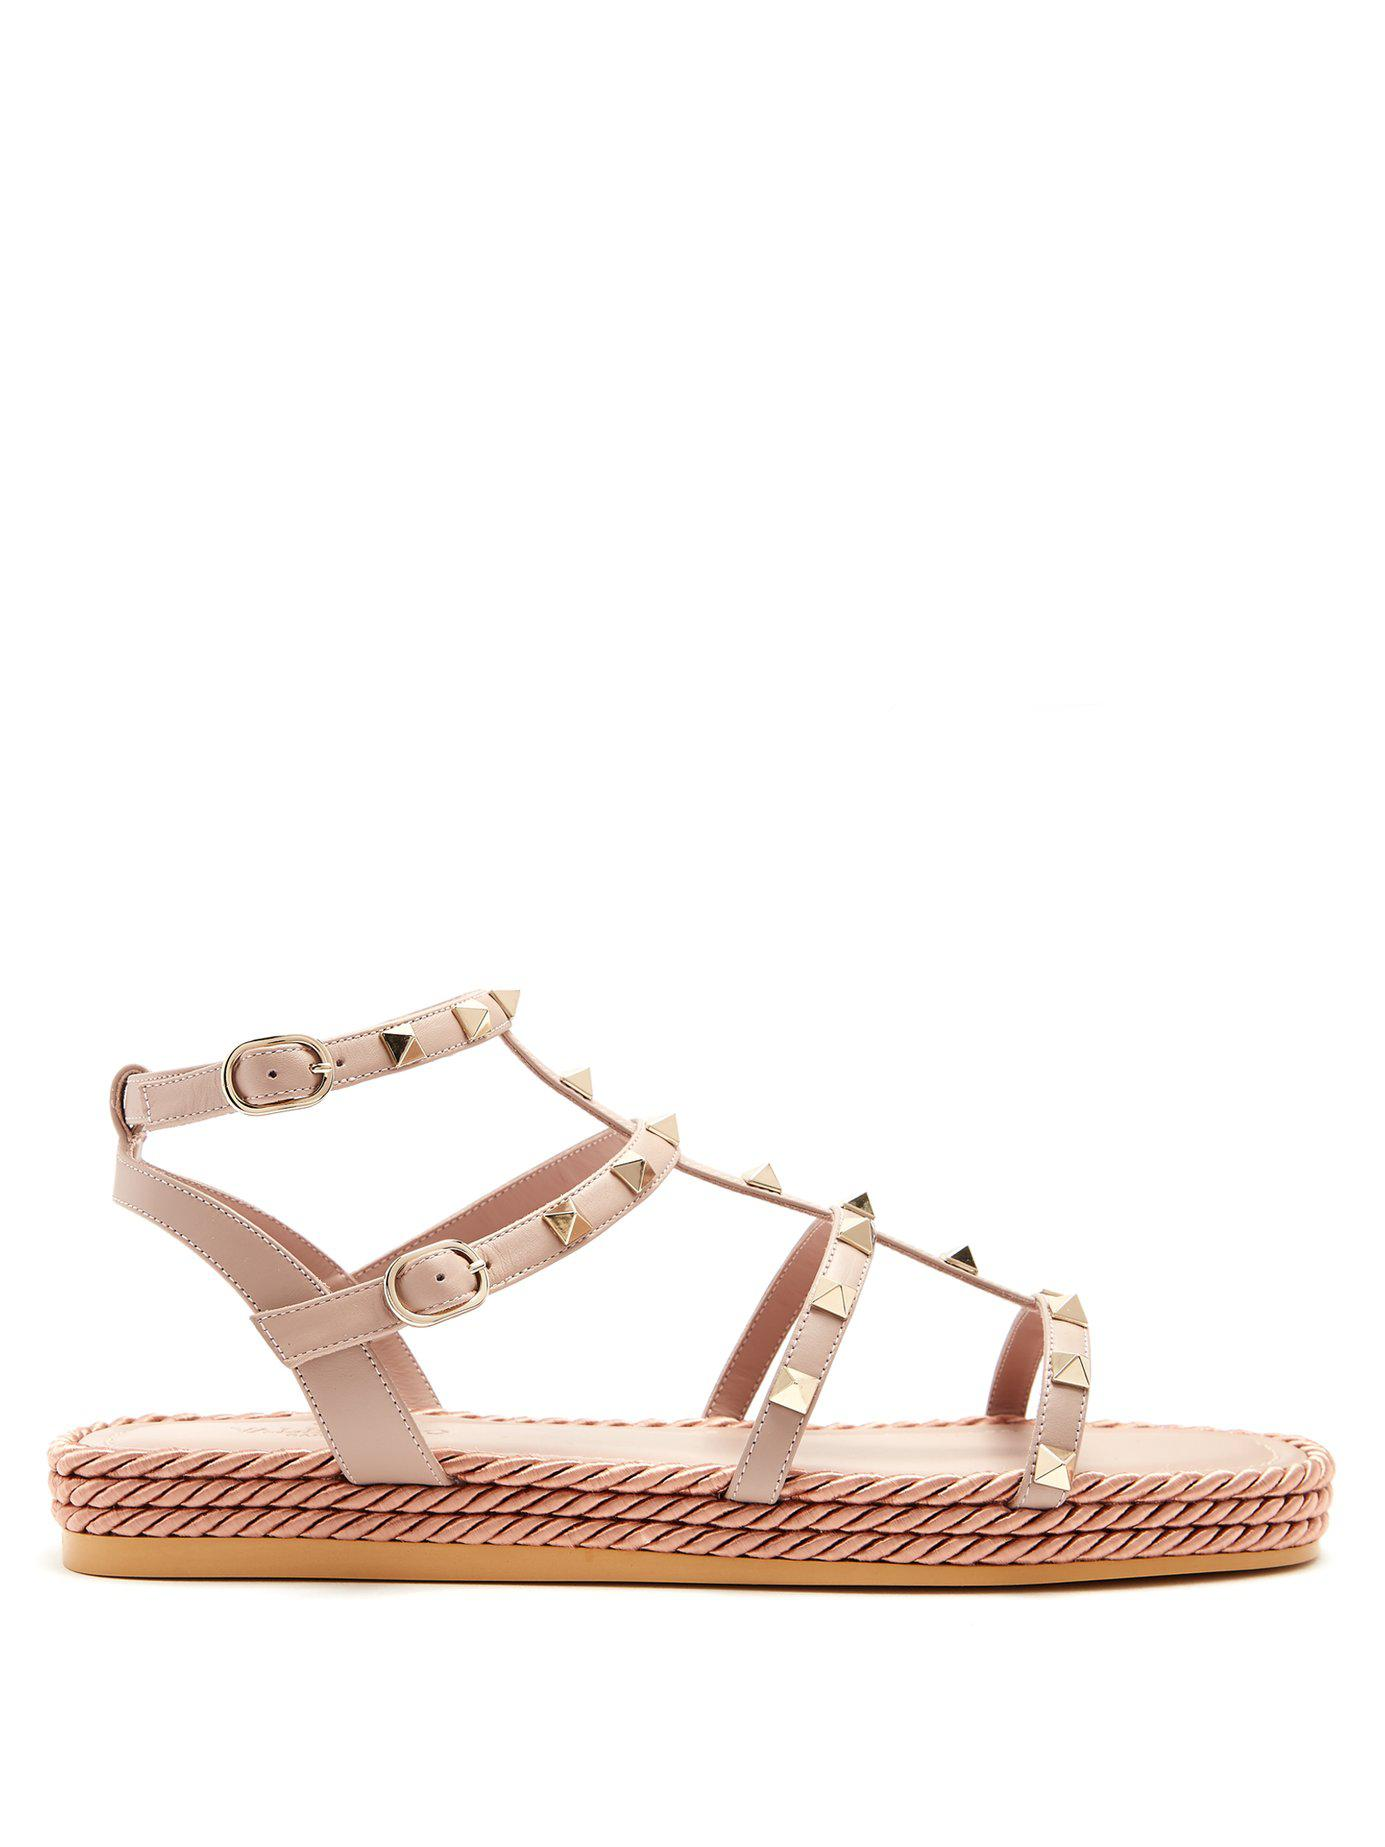 94d551d60af Valentino. Women s Torchon Rockstud Leather Sandals